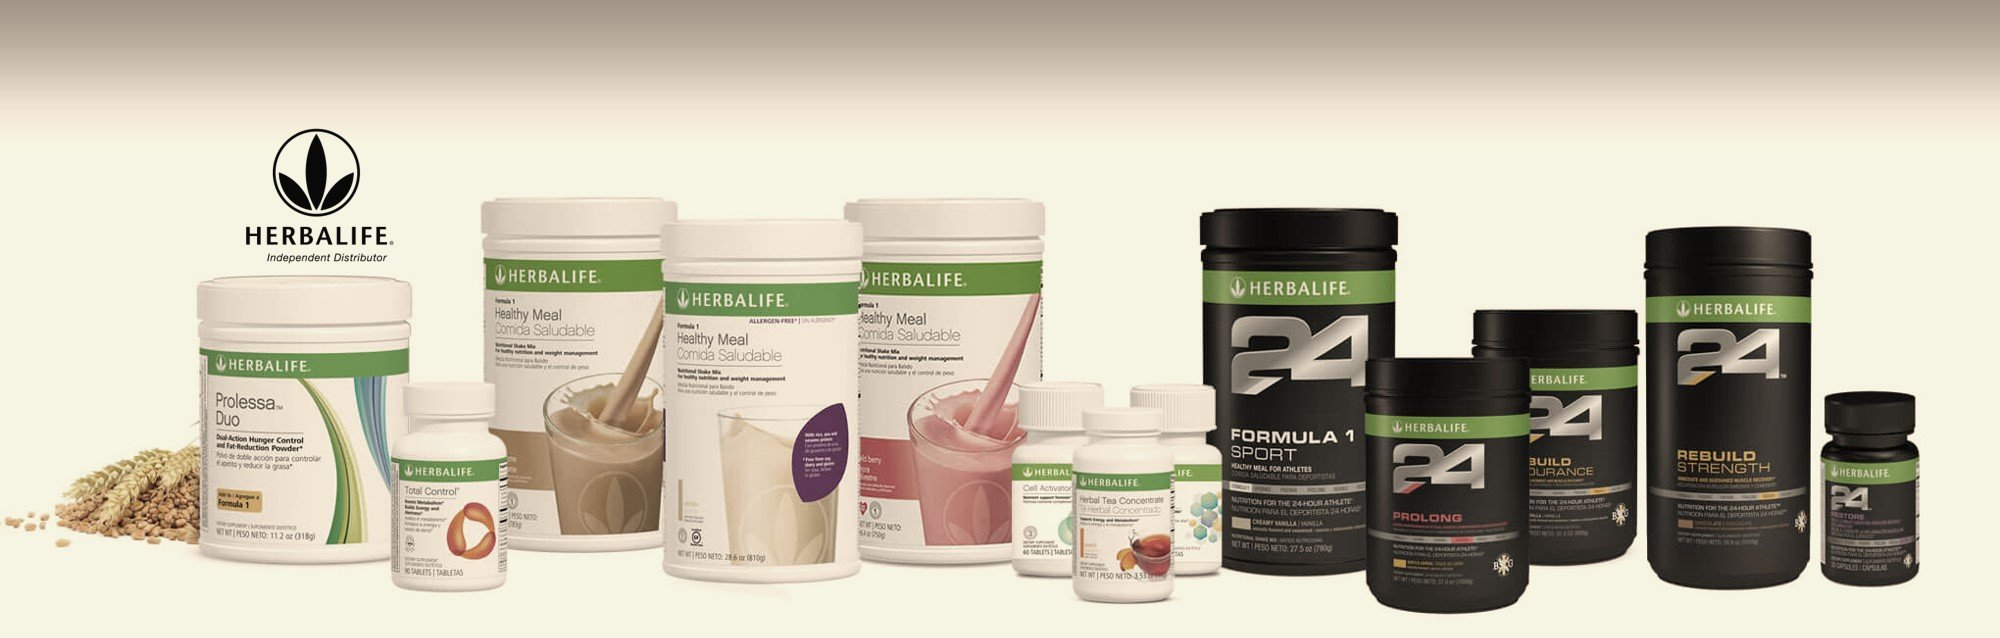 Herbalife Nutritional Products